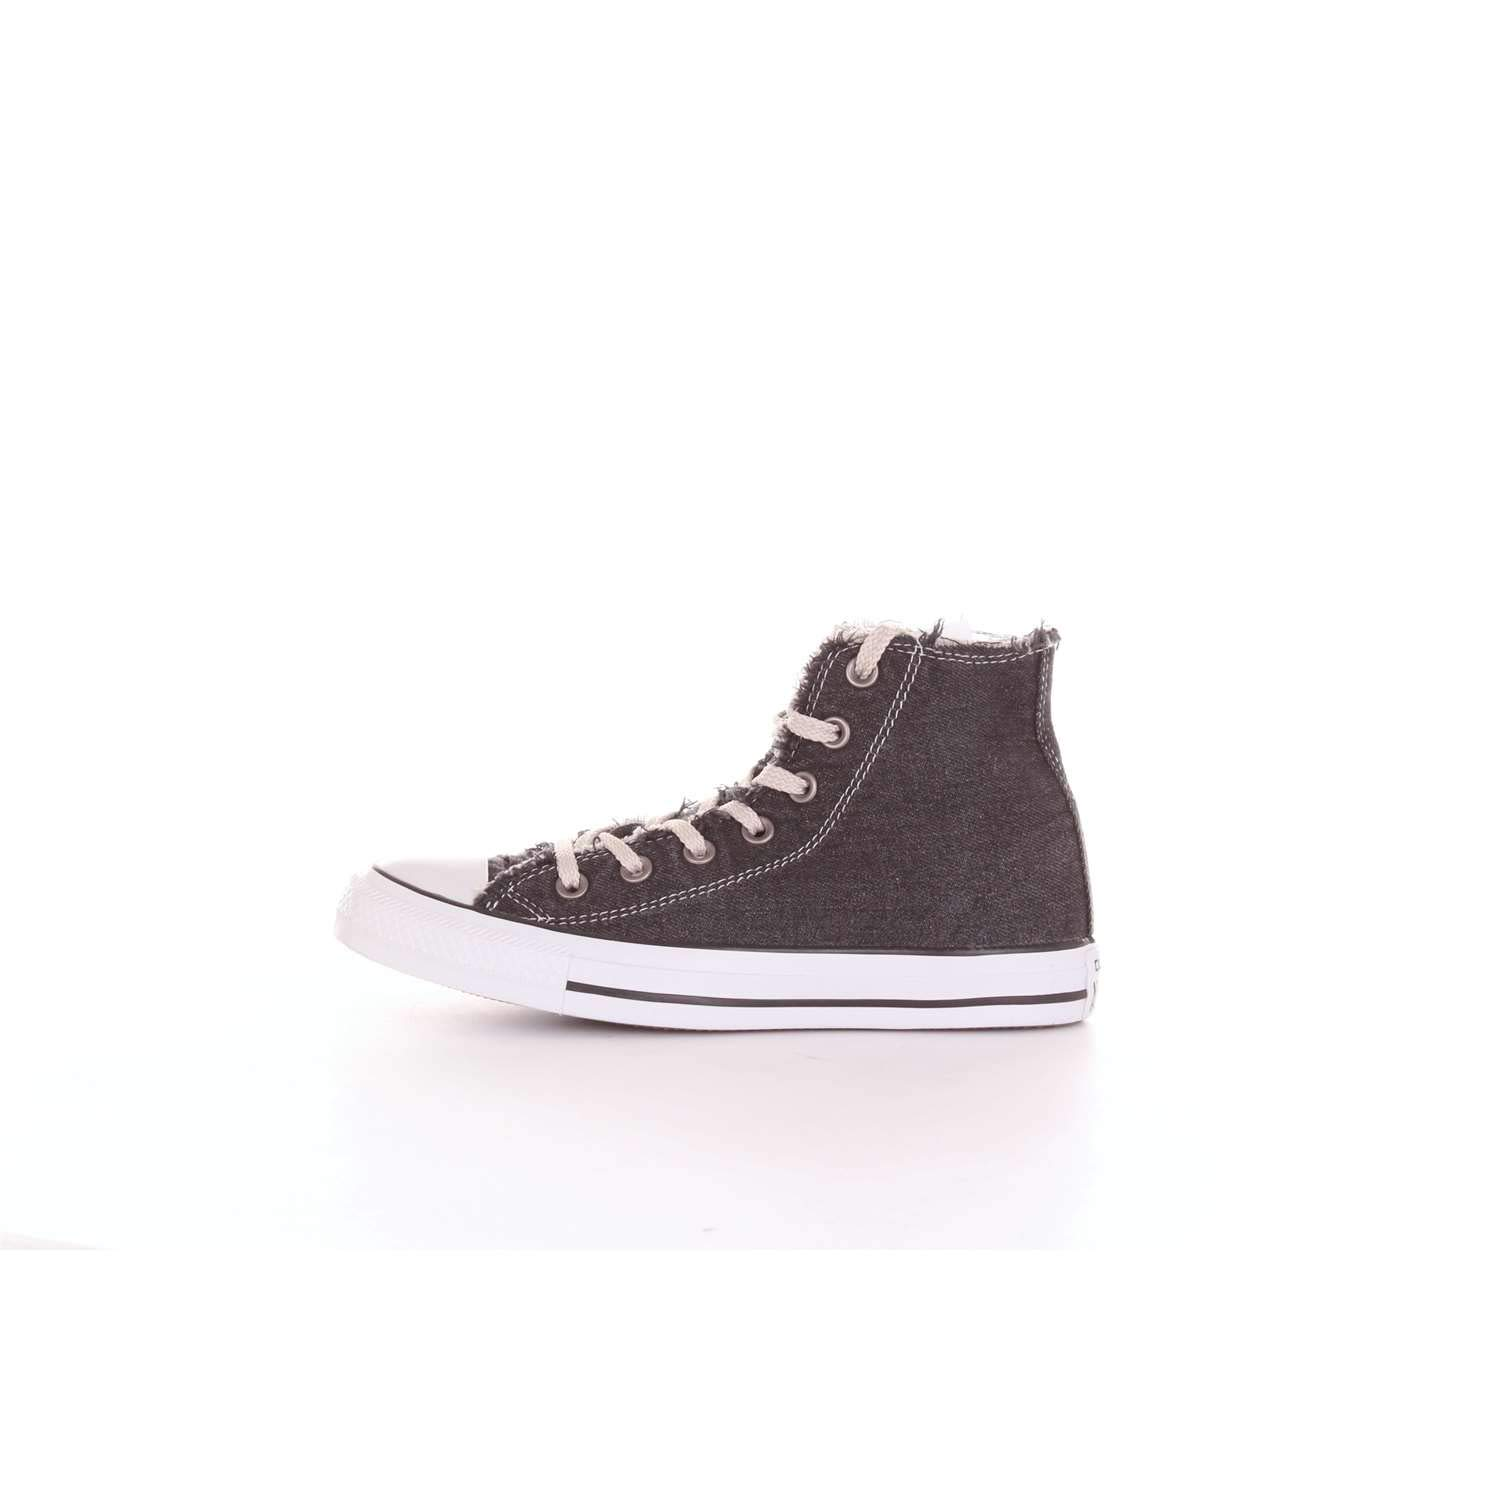 CONVERSE 160941C Sneakers Mujer